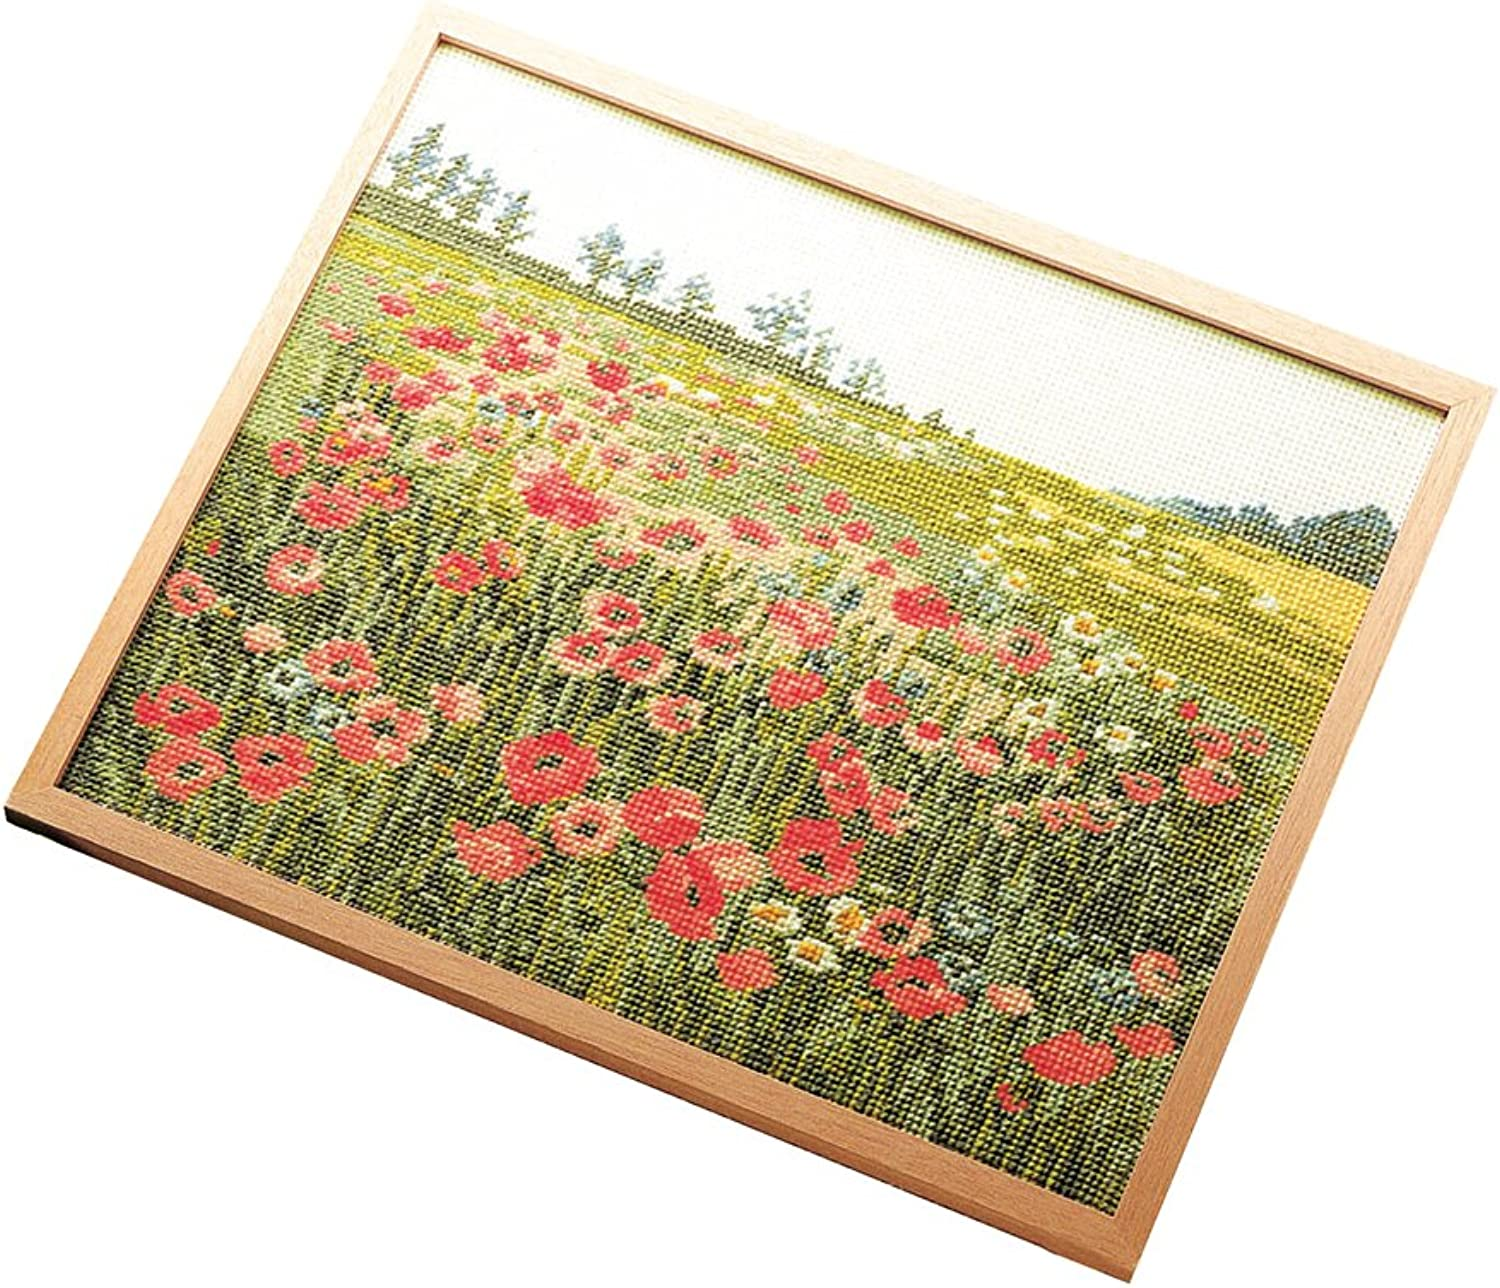 Offwhite time the bloom of Orimupasu cross stitch embroidery kit Shikisai of poetry poppy 7111